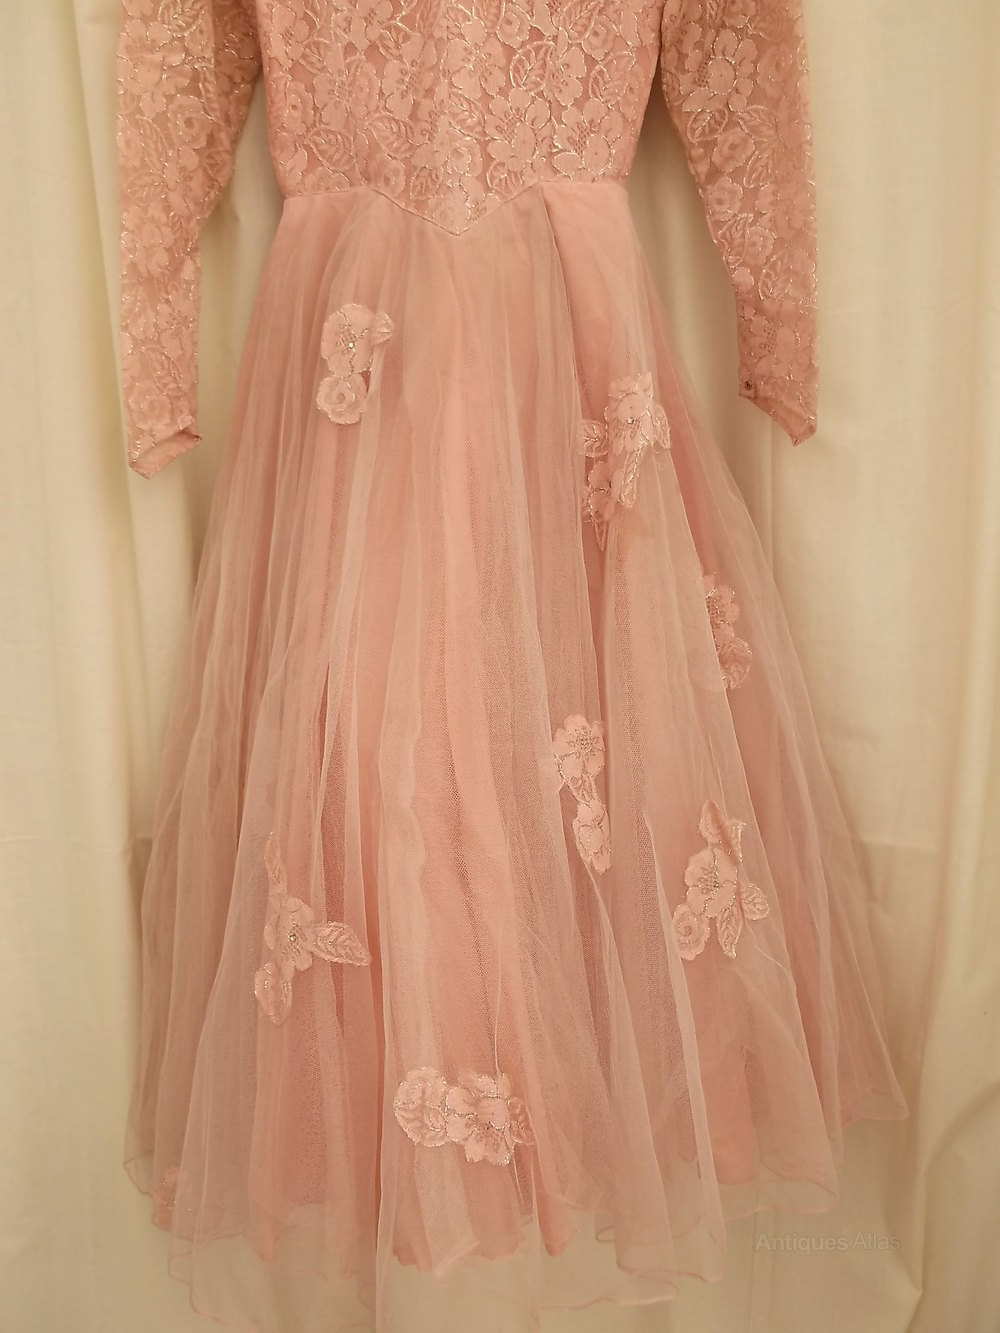 Antiques atlas 1950 39 s pink wedding dress veil for Wedding dress with veil